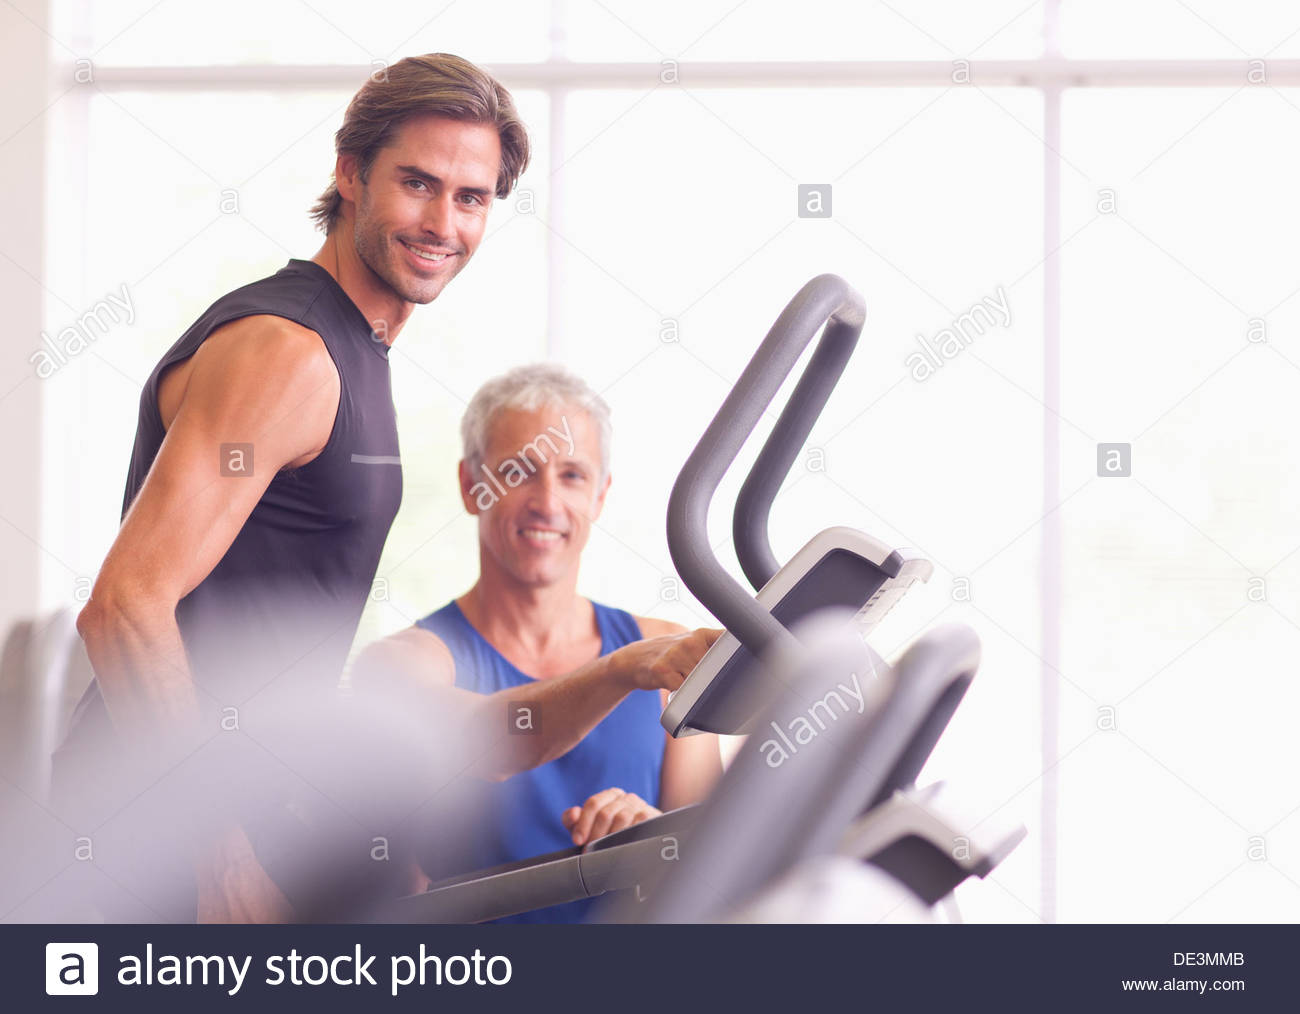 Men talking on treadmill in gymnasium - Stock Image